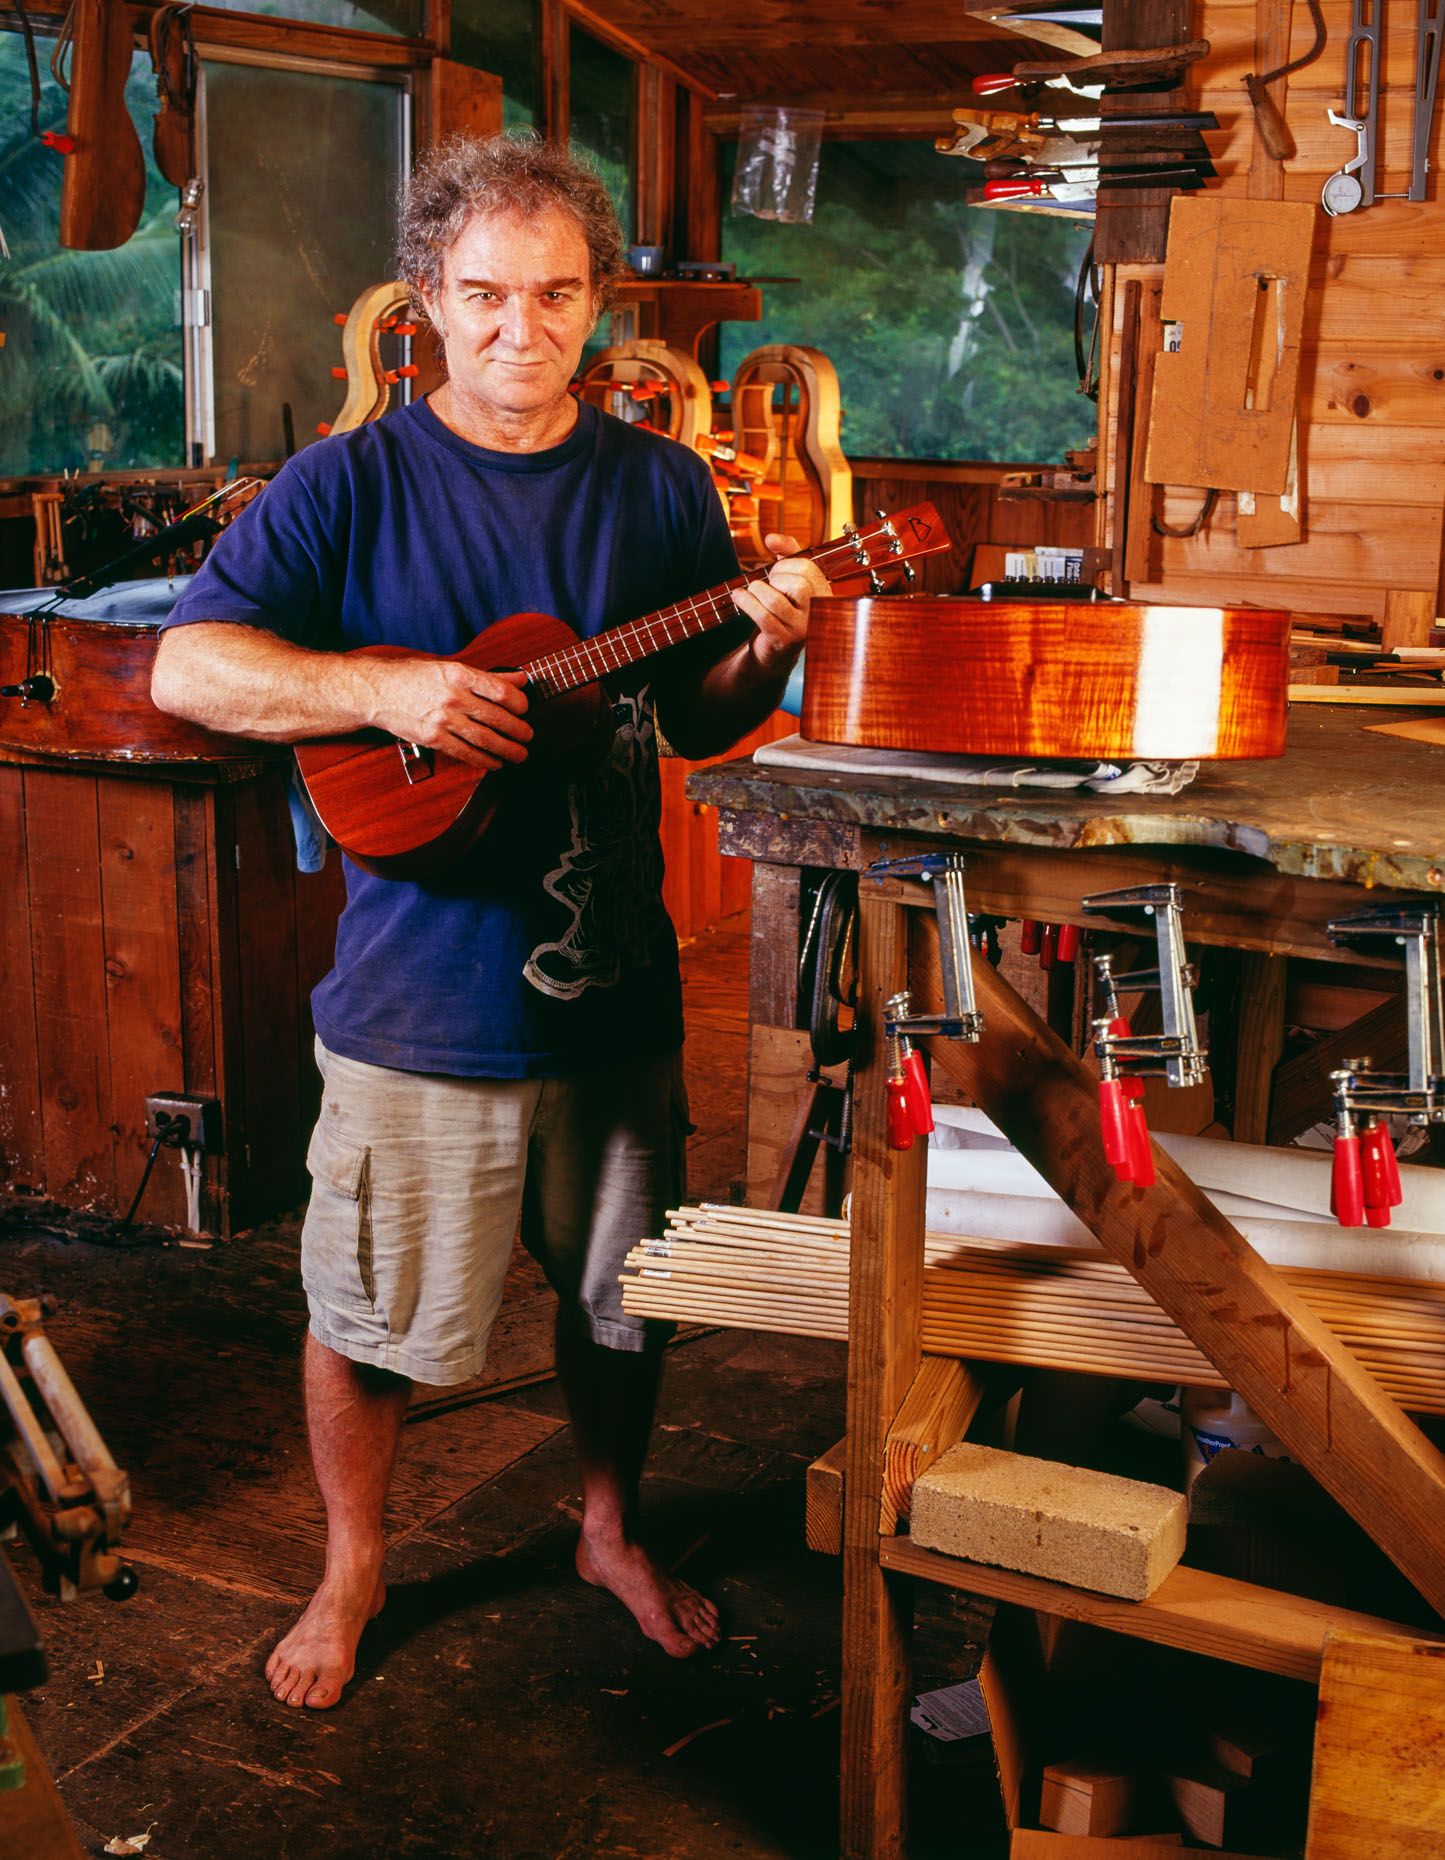 Luthier (Mature man) playing ukelele in his workshop, portrait